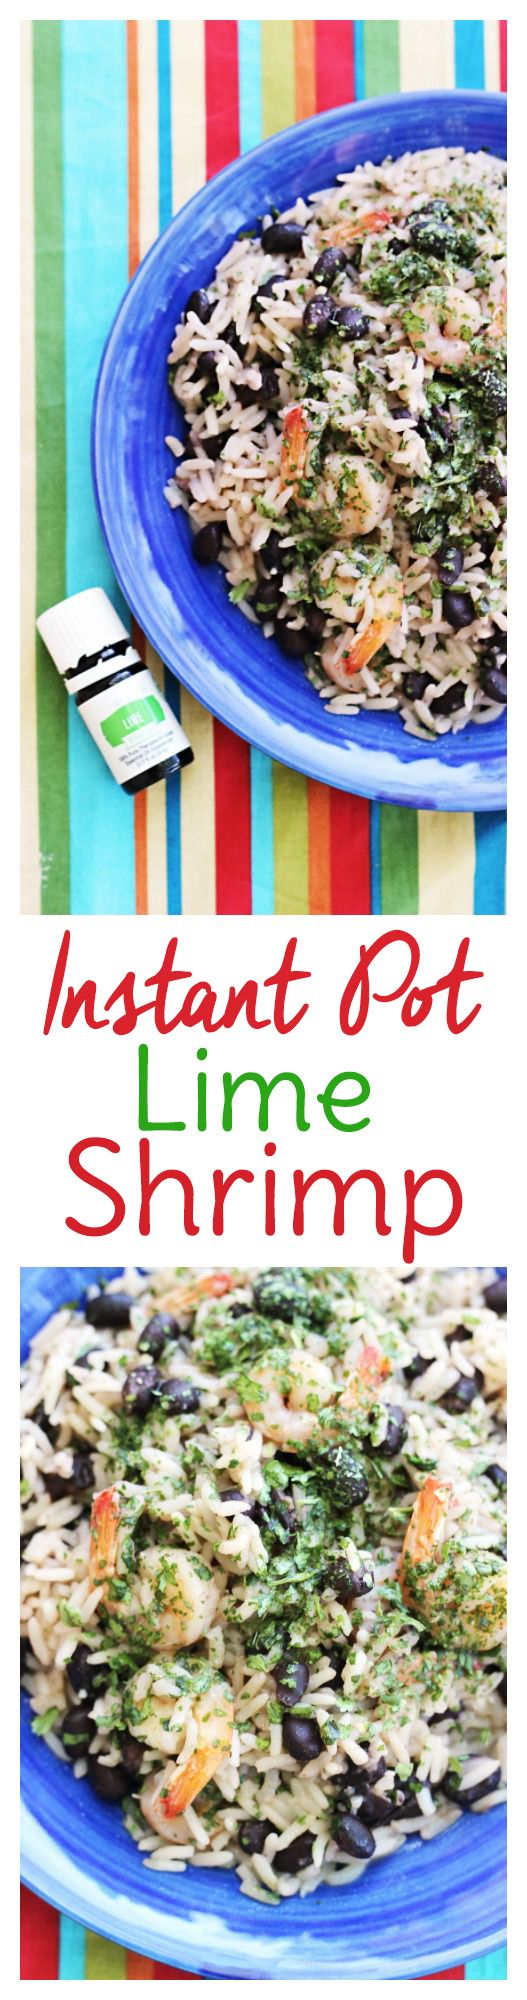 Instant Pot Shrimp and Rice: Done in 5 Minutes! via @sweettmakes3